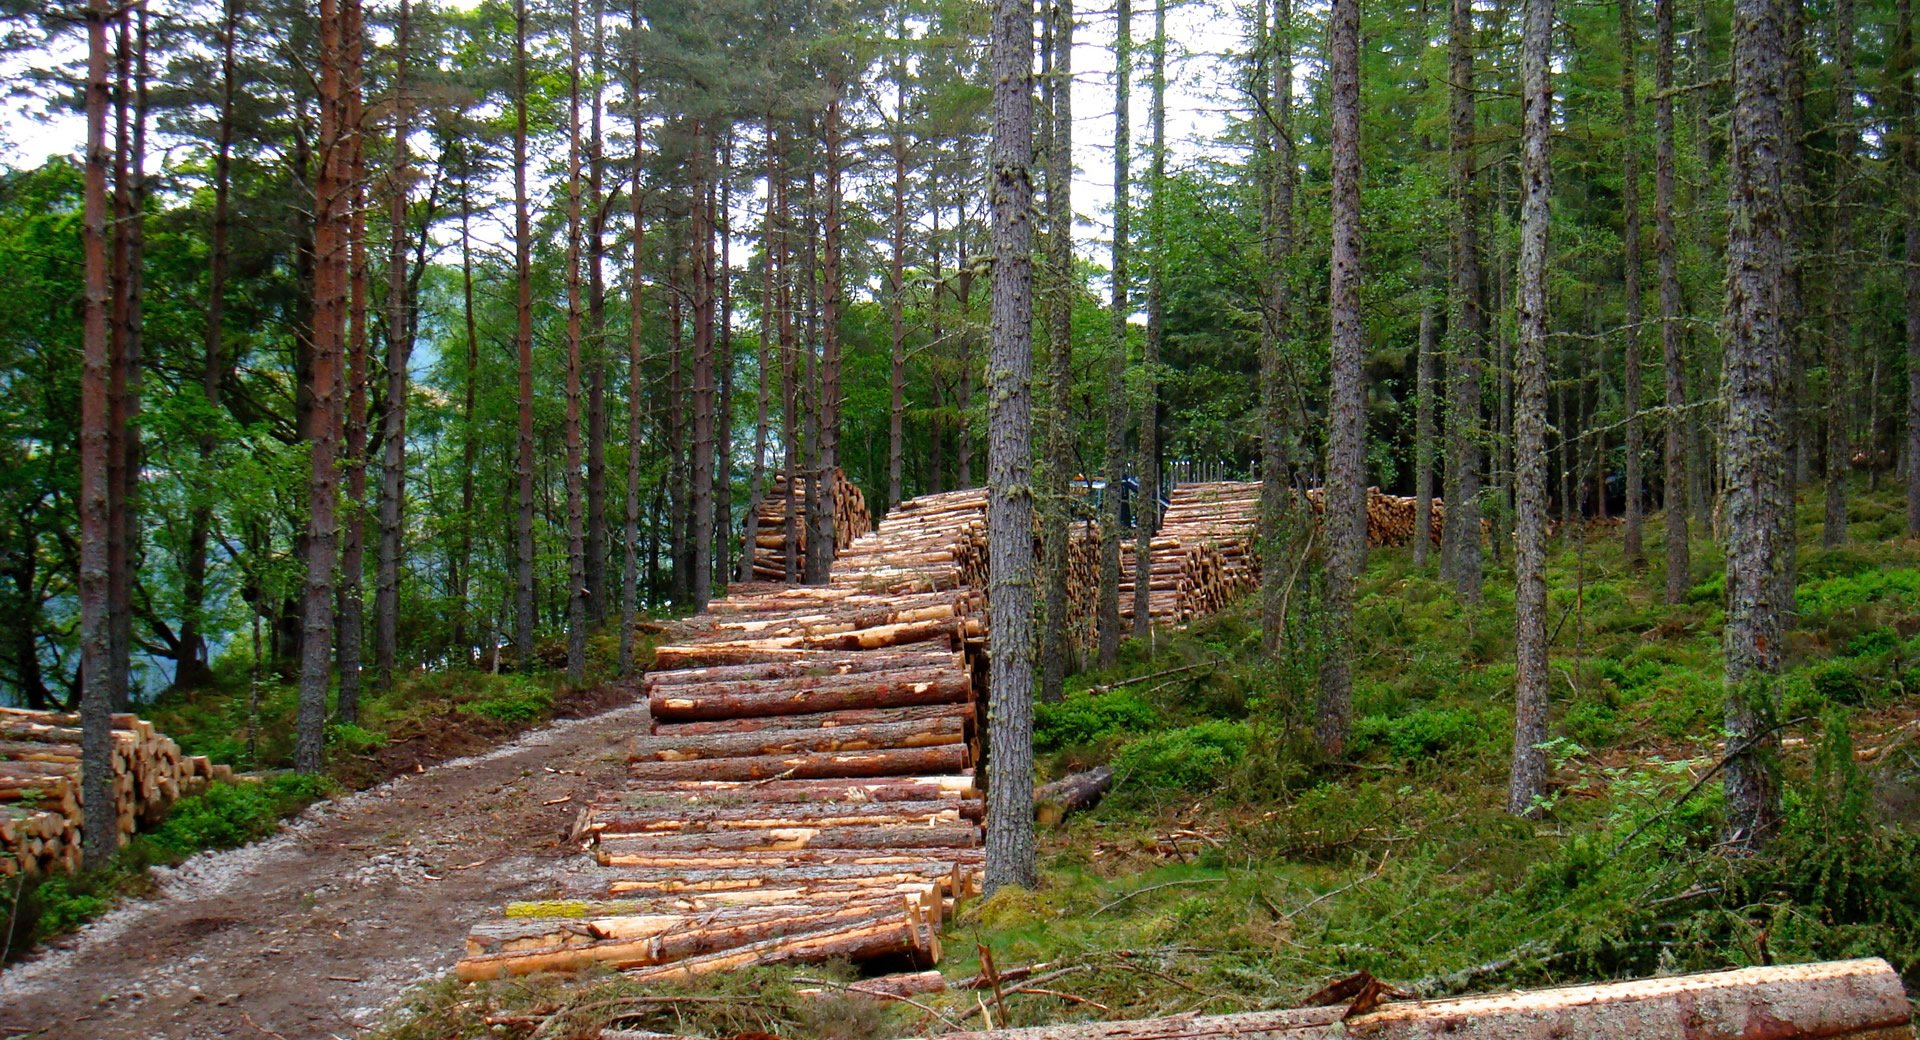 Forestry logs